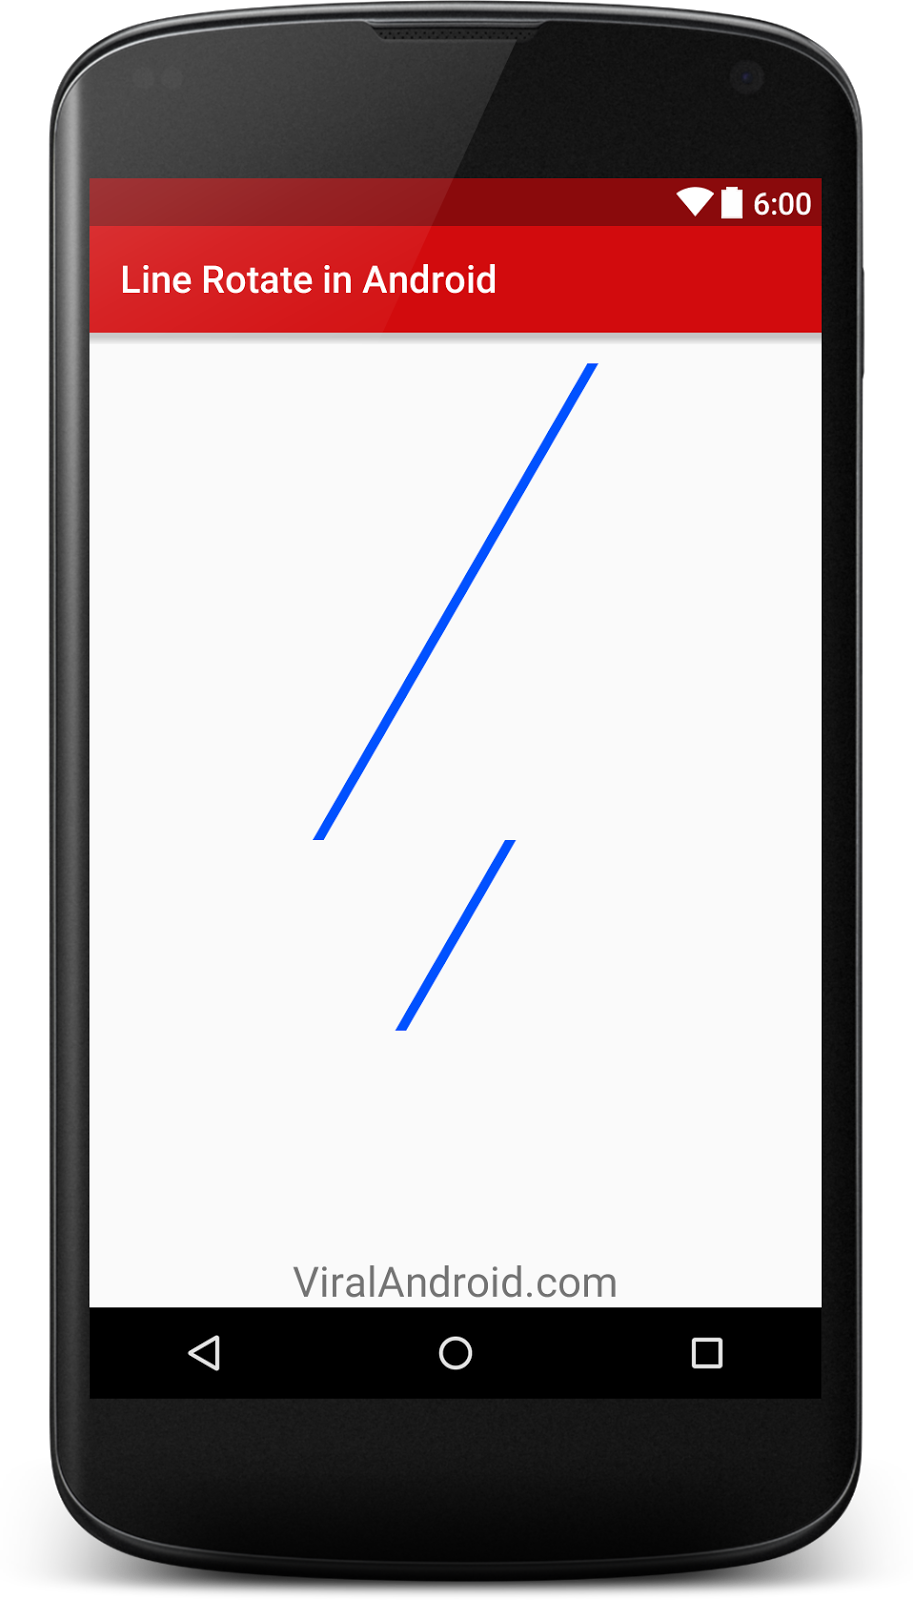 How to Rotate a Line in Android